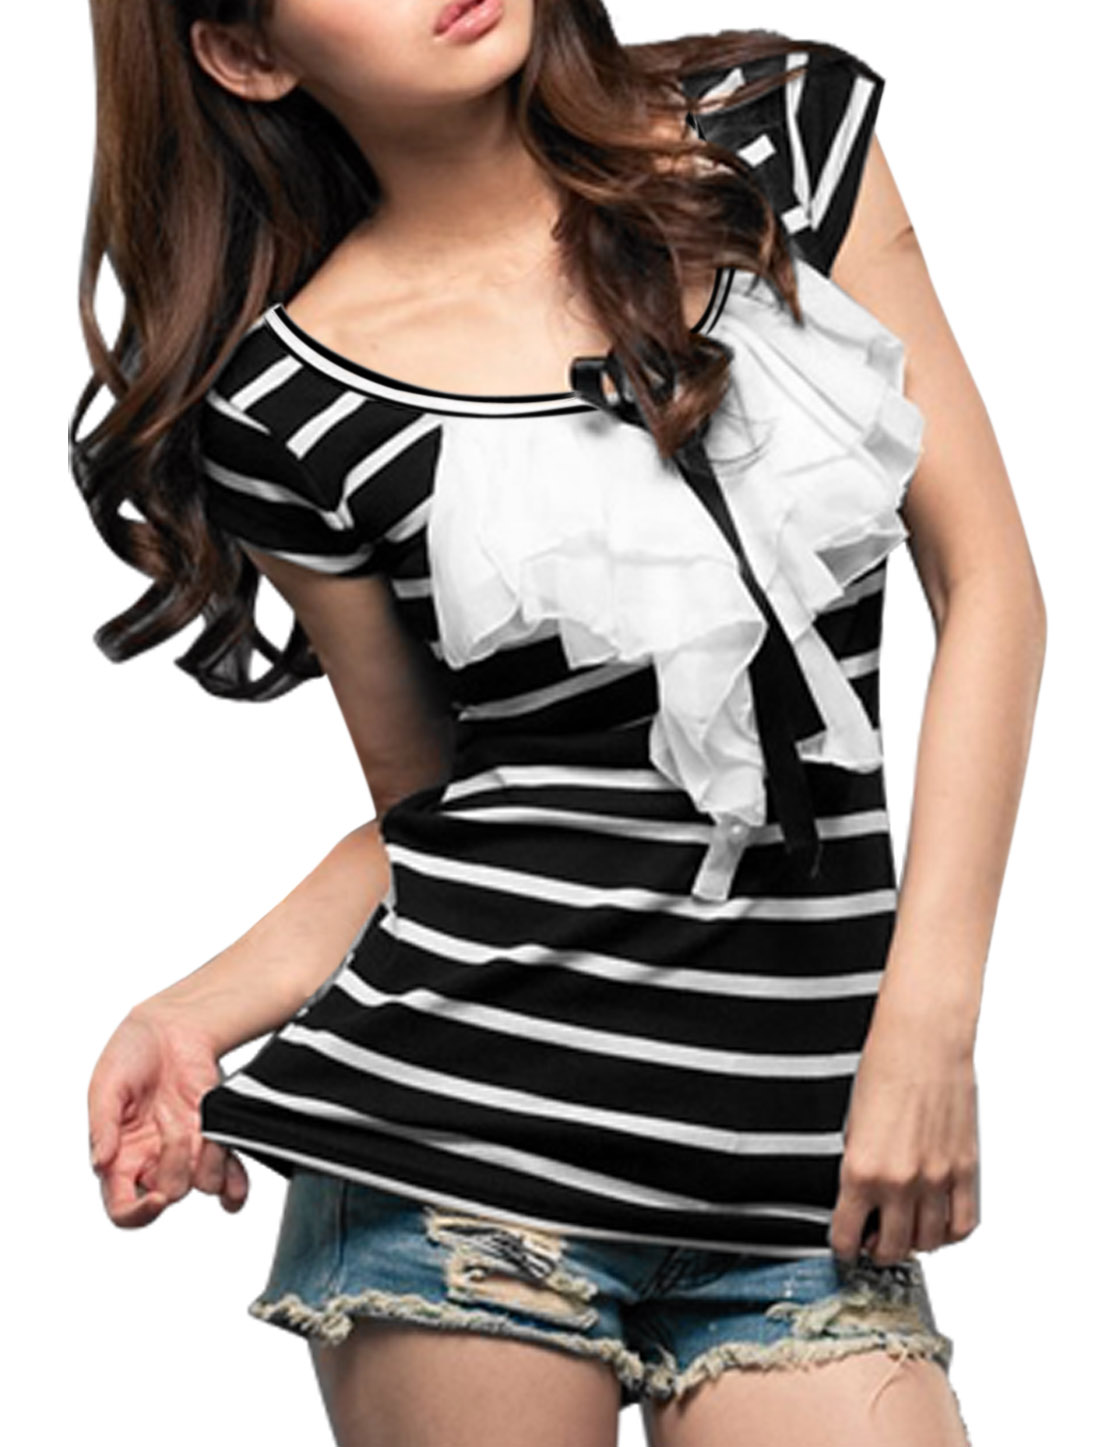 Woman Short Sleeve Stripes Flouncing Scoop Neck Shirt Black White S